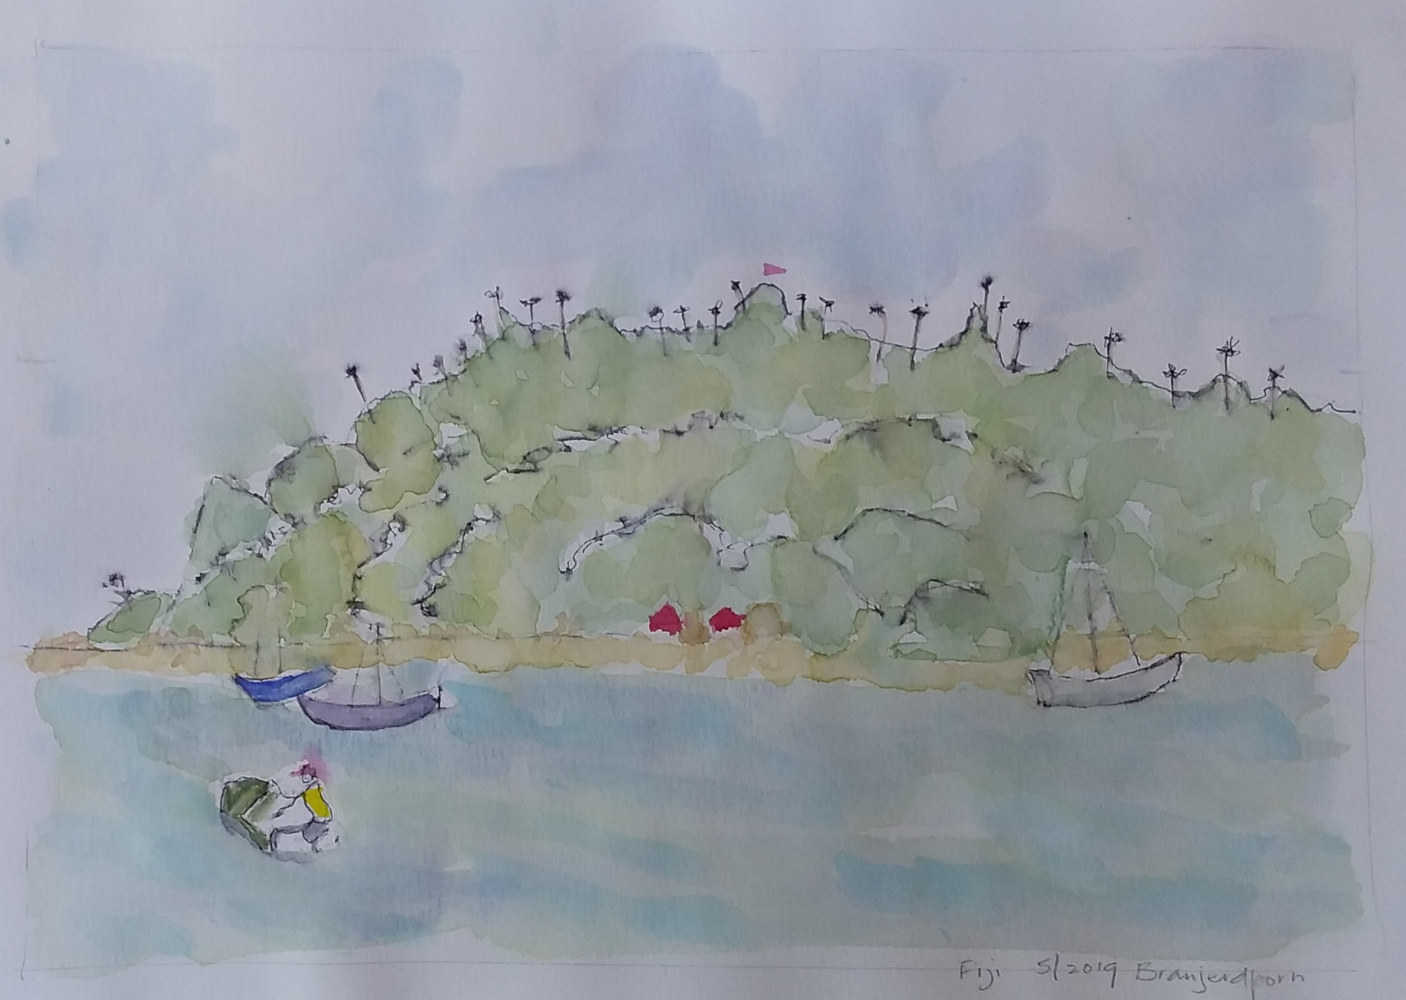 Drawing An Island in Fiji by Gwenda Branjerdporn